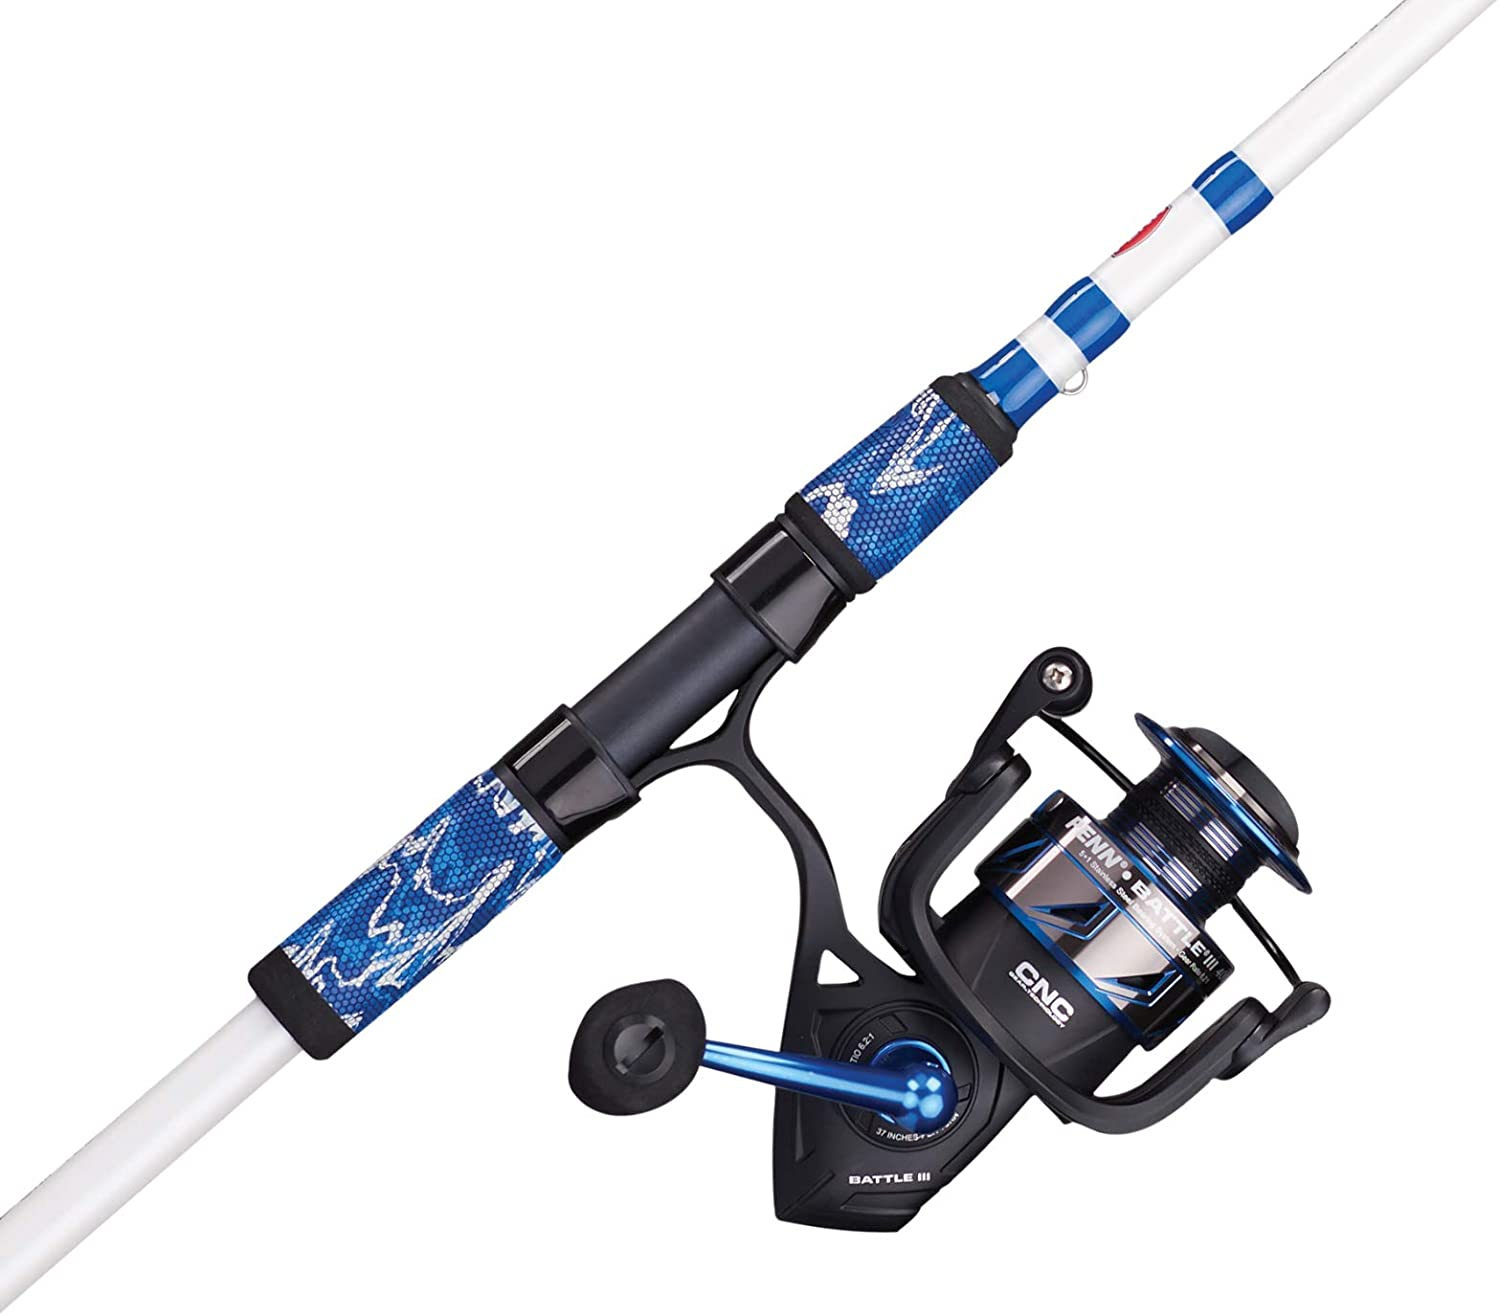 PENN Fishing Battle Spinning Low price Reel Spring new work black Rod w and Combo